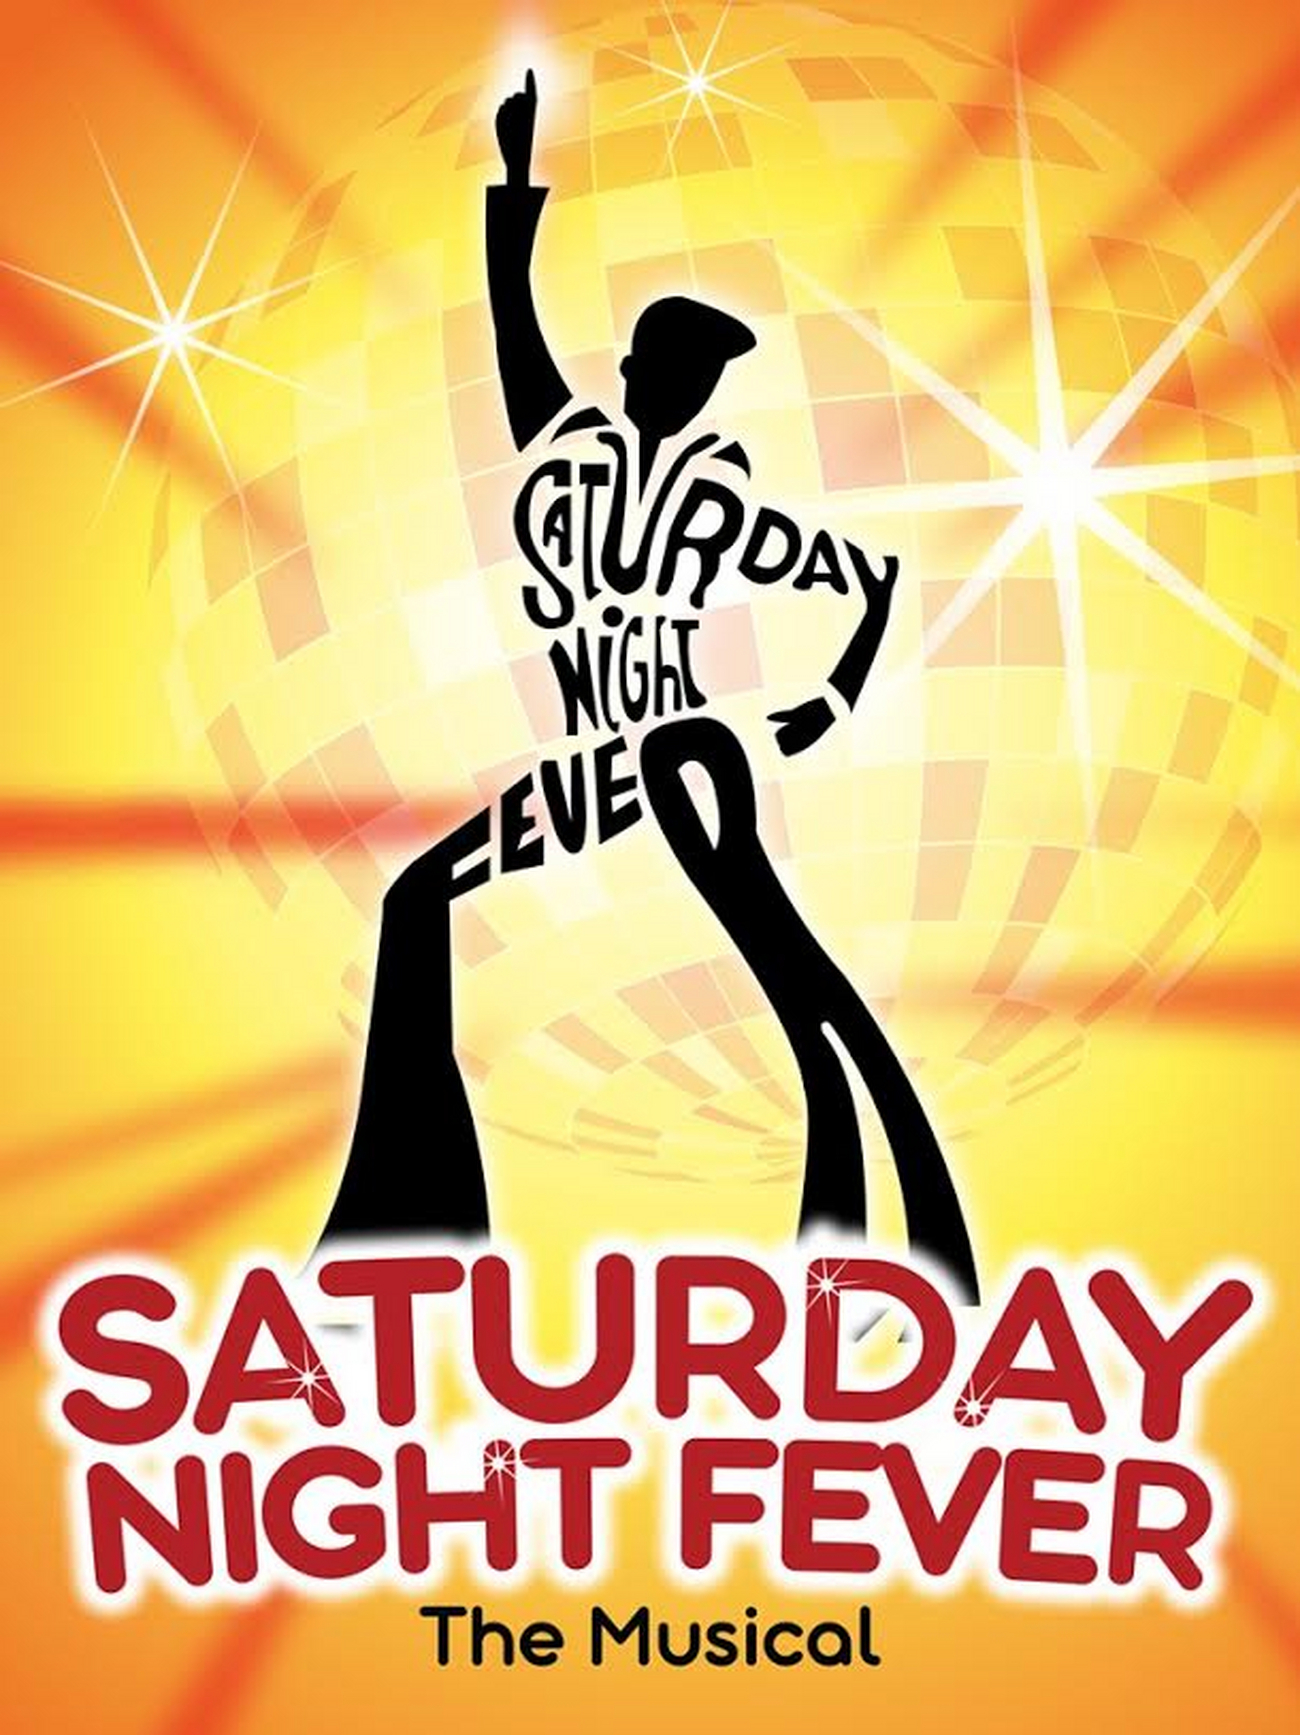 BWW Review: SATURDAY NIGHT FEVER THE MUSICAL at John W. Engeman Theater